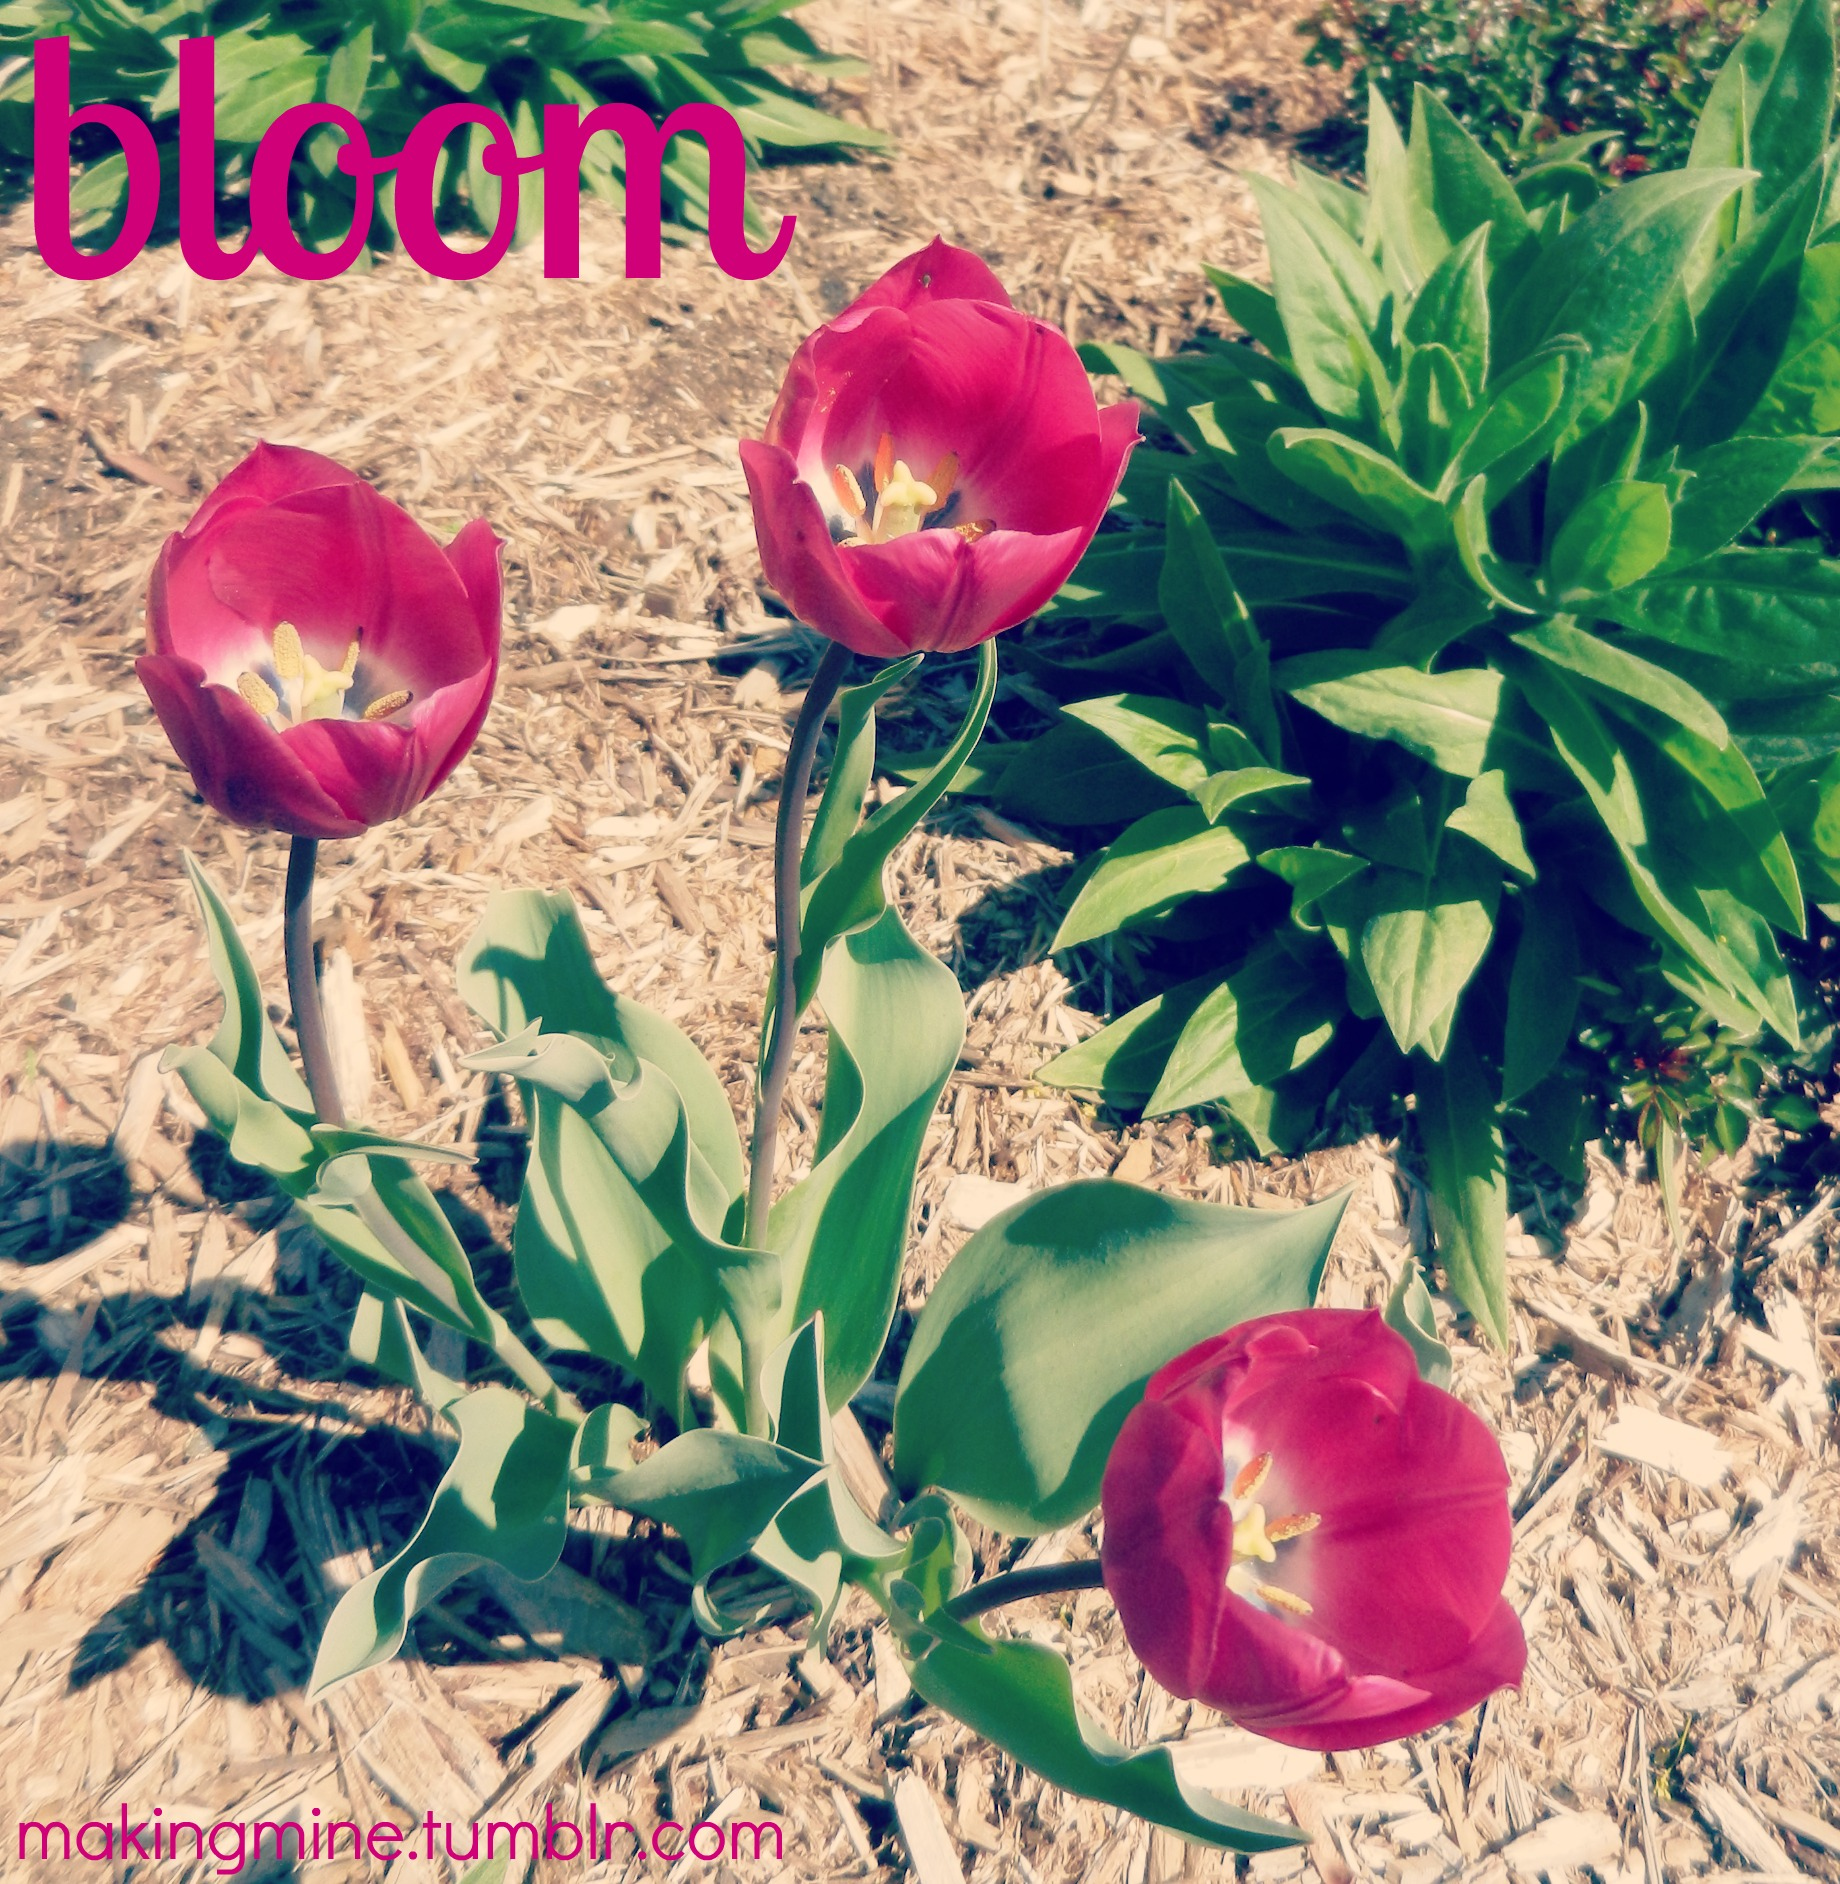 Tulips blooming in a spring garden